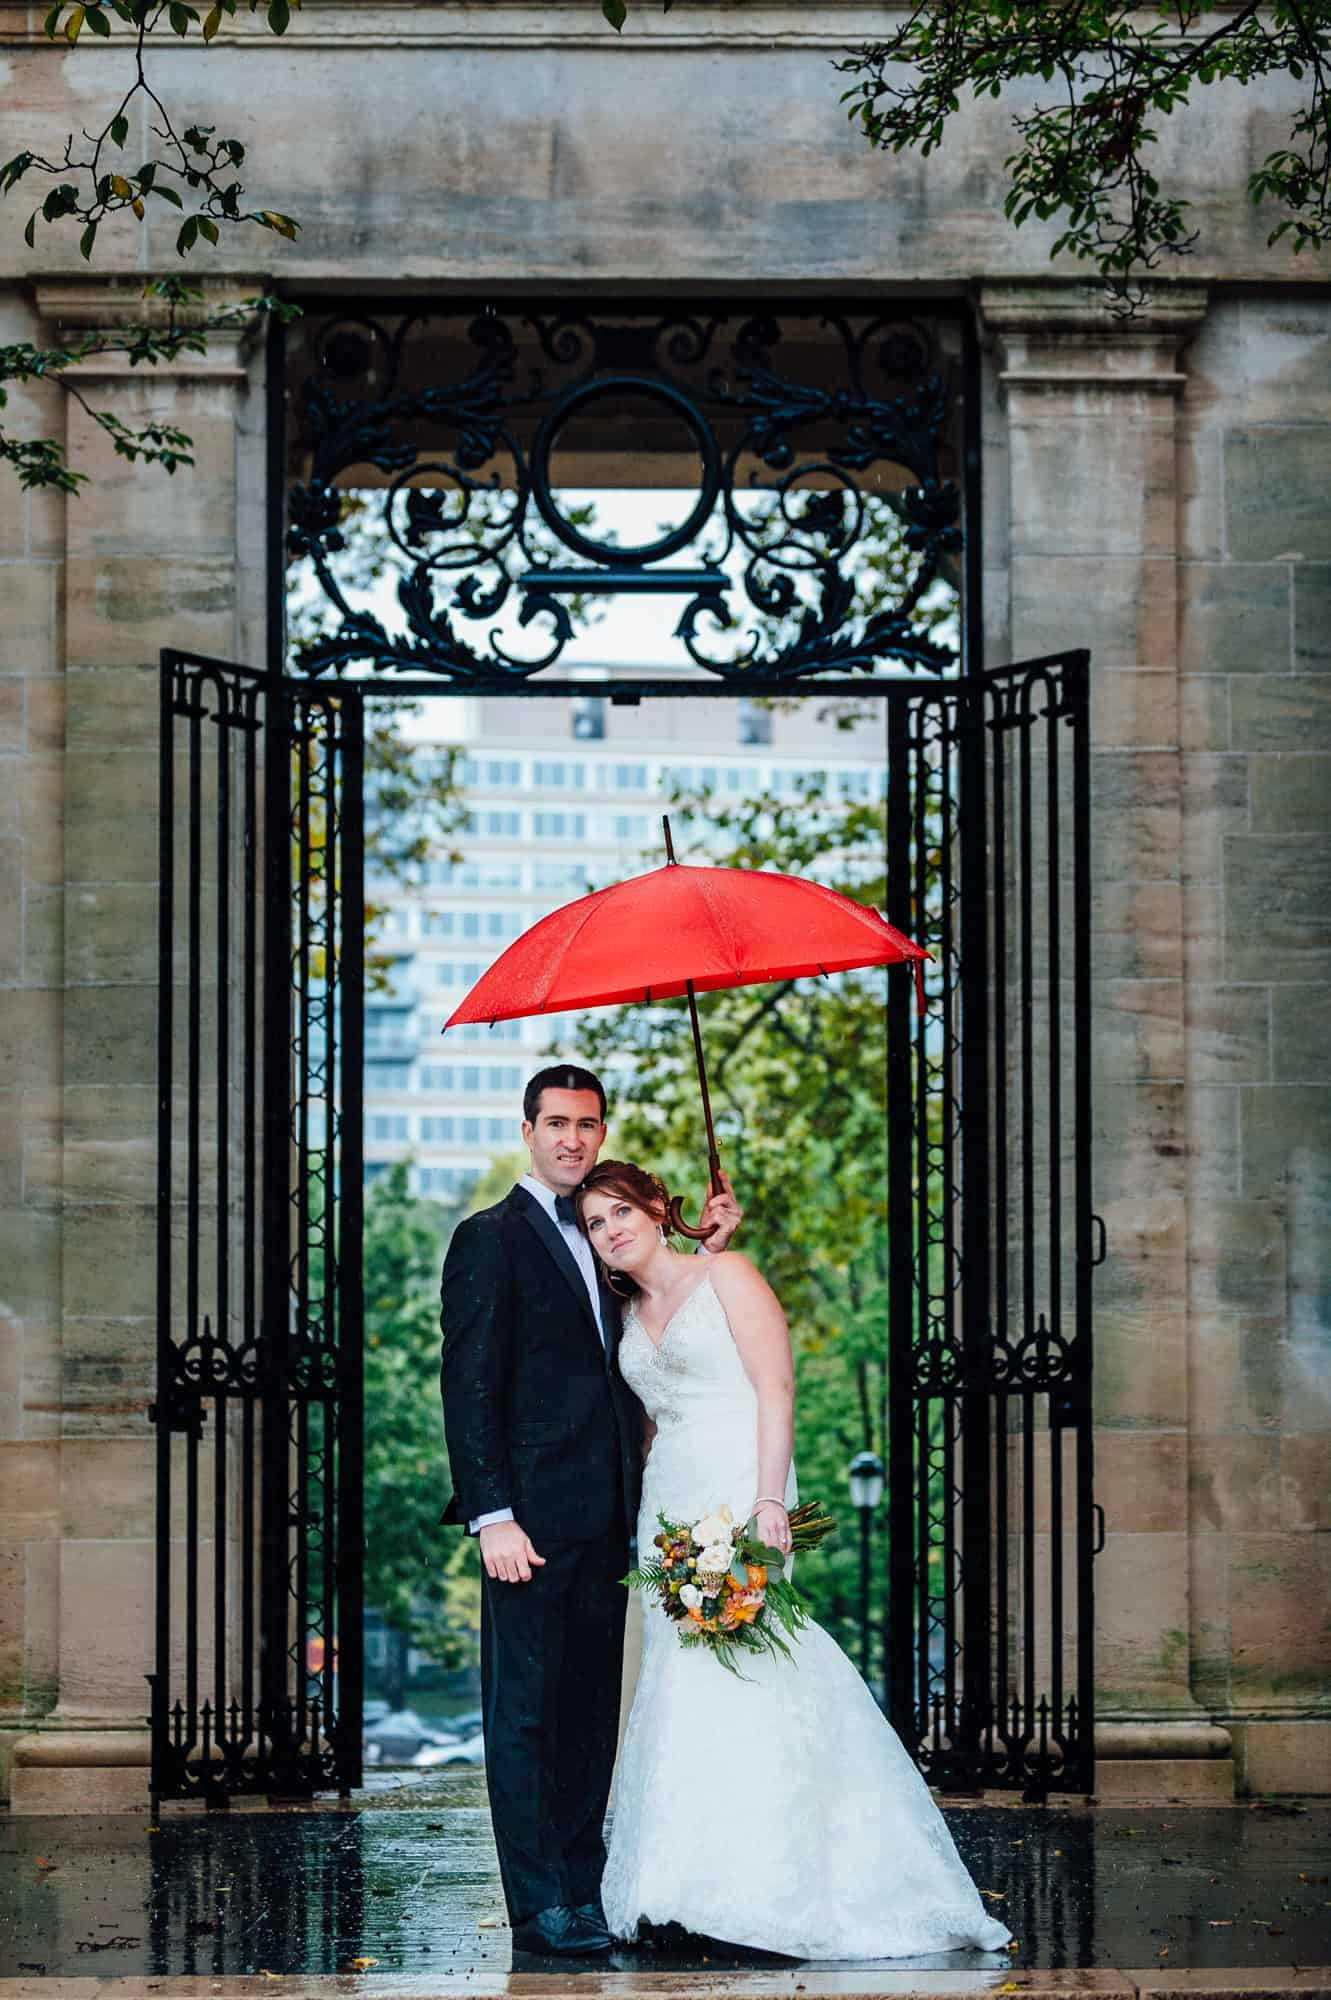 Bride and groom with red umbrella at the Rodin Museum